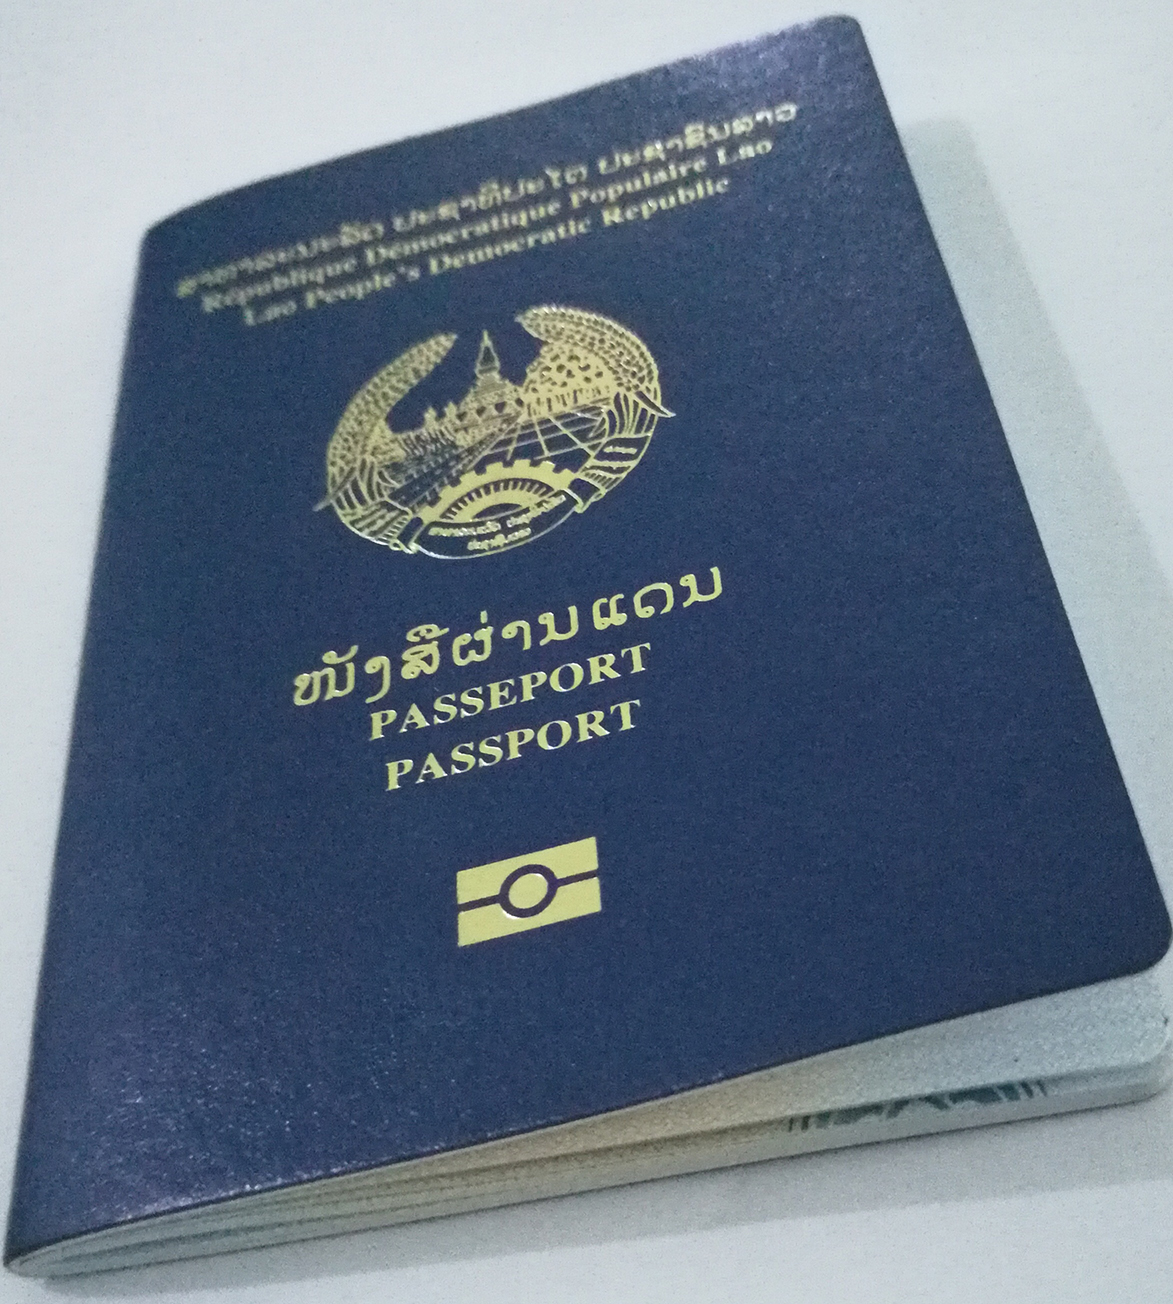 Americas 1 Passport Expediting Company US Passport Application Form Made Simple Fast amp Easy! US Passport Services 18008812464